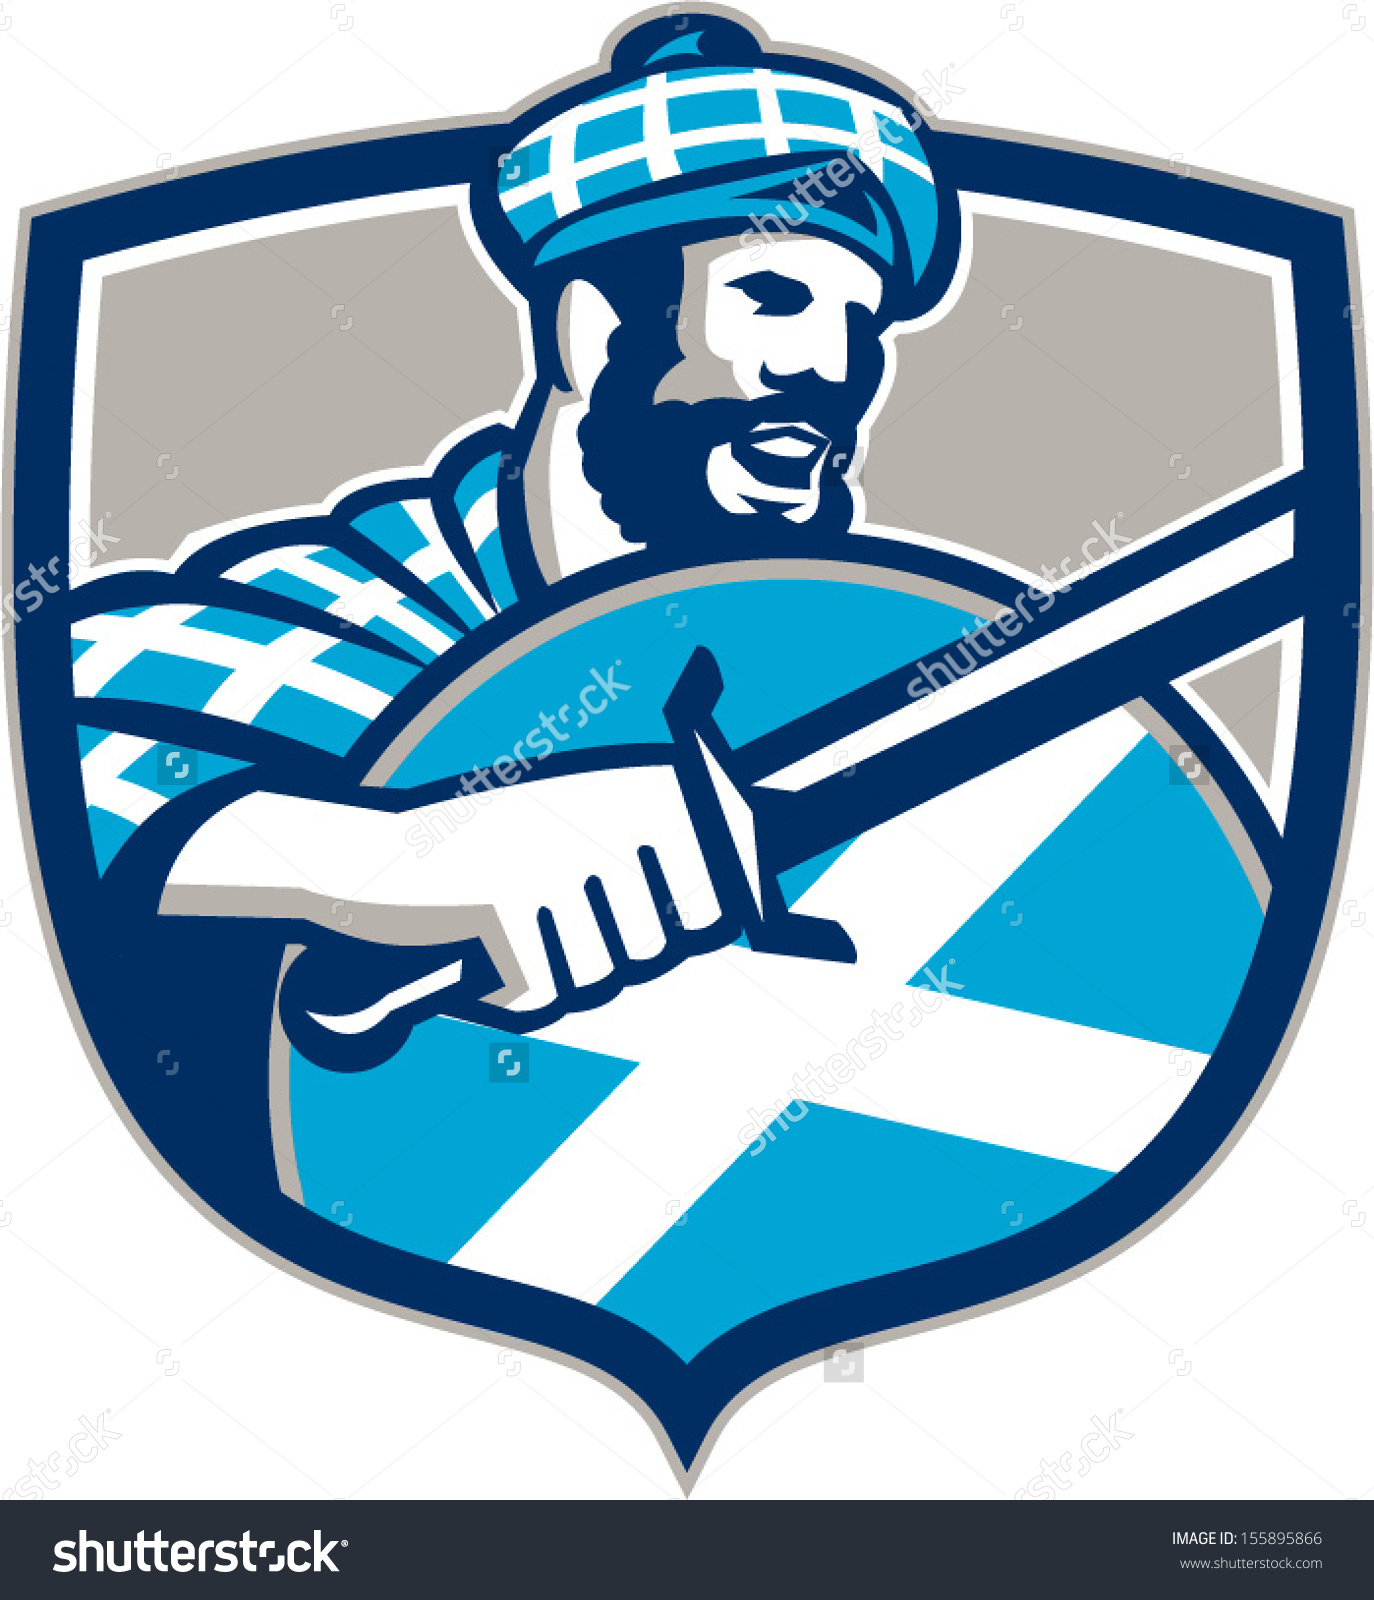 Illustration Highlander Scotsman Wielding Sword Scotland Stock.